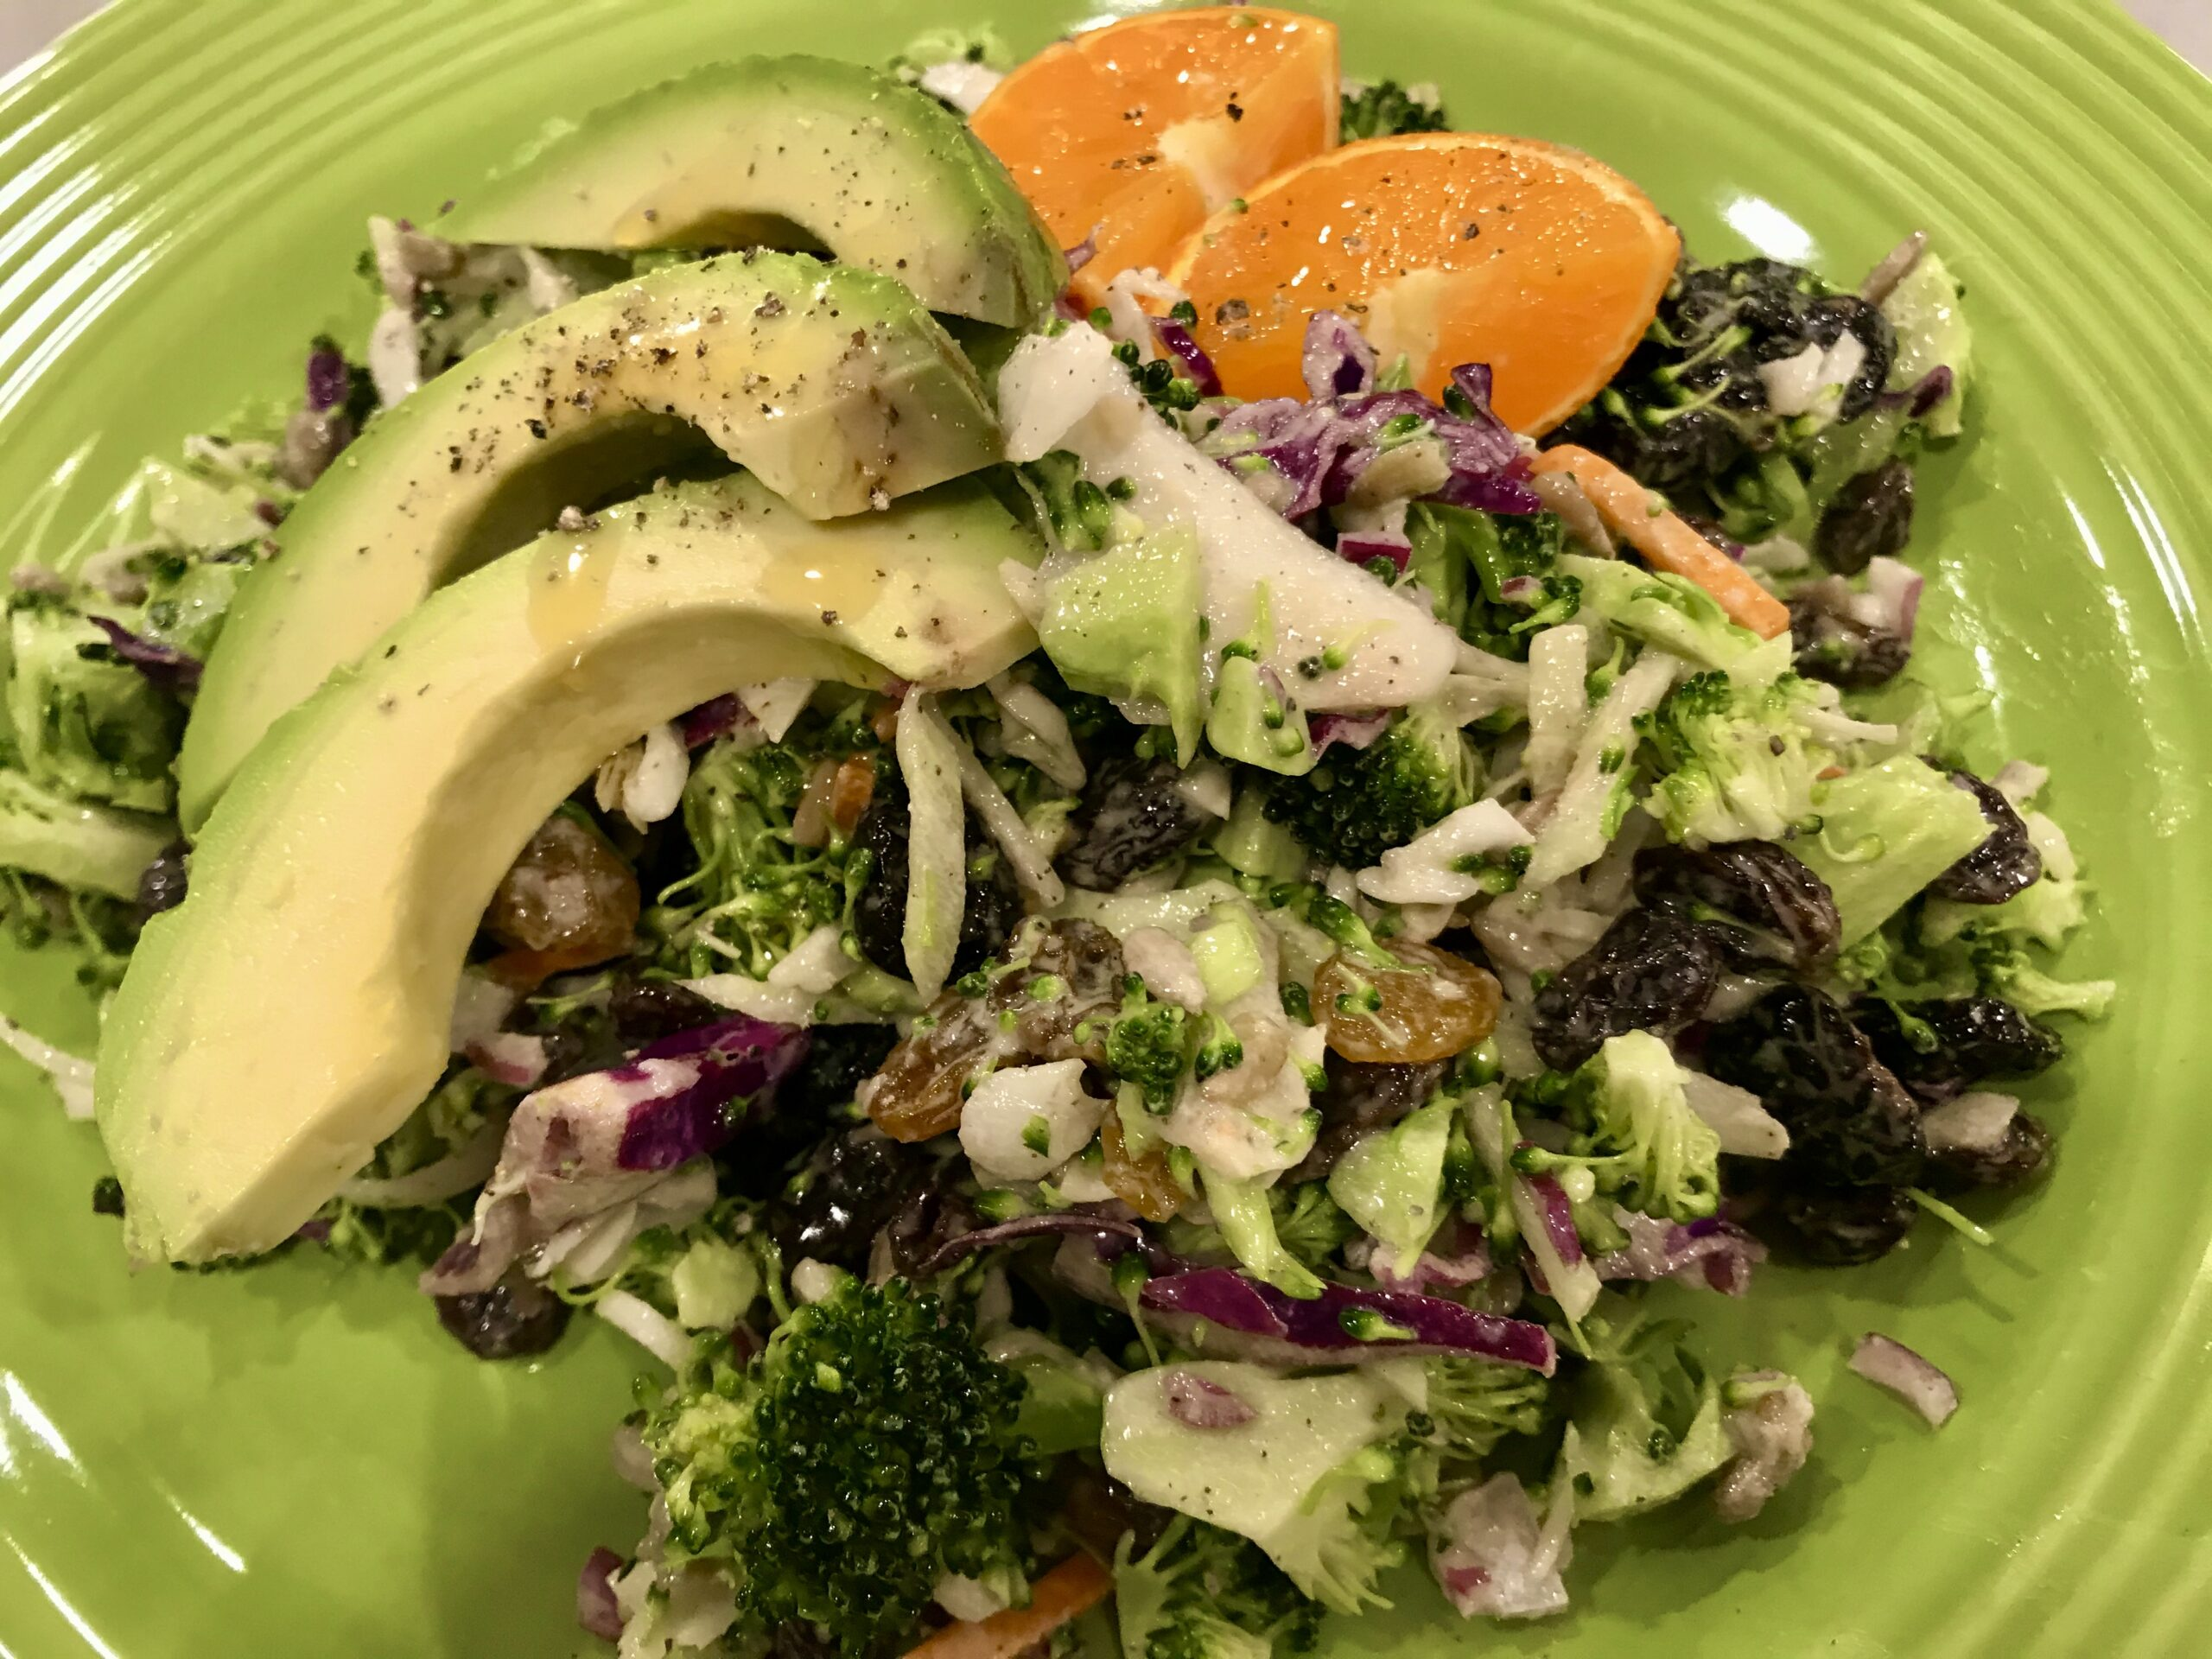 CHOPPED BROCCOLI SALAD WITH CHERRIES AND SUNFLOWER SEEDS